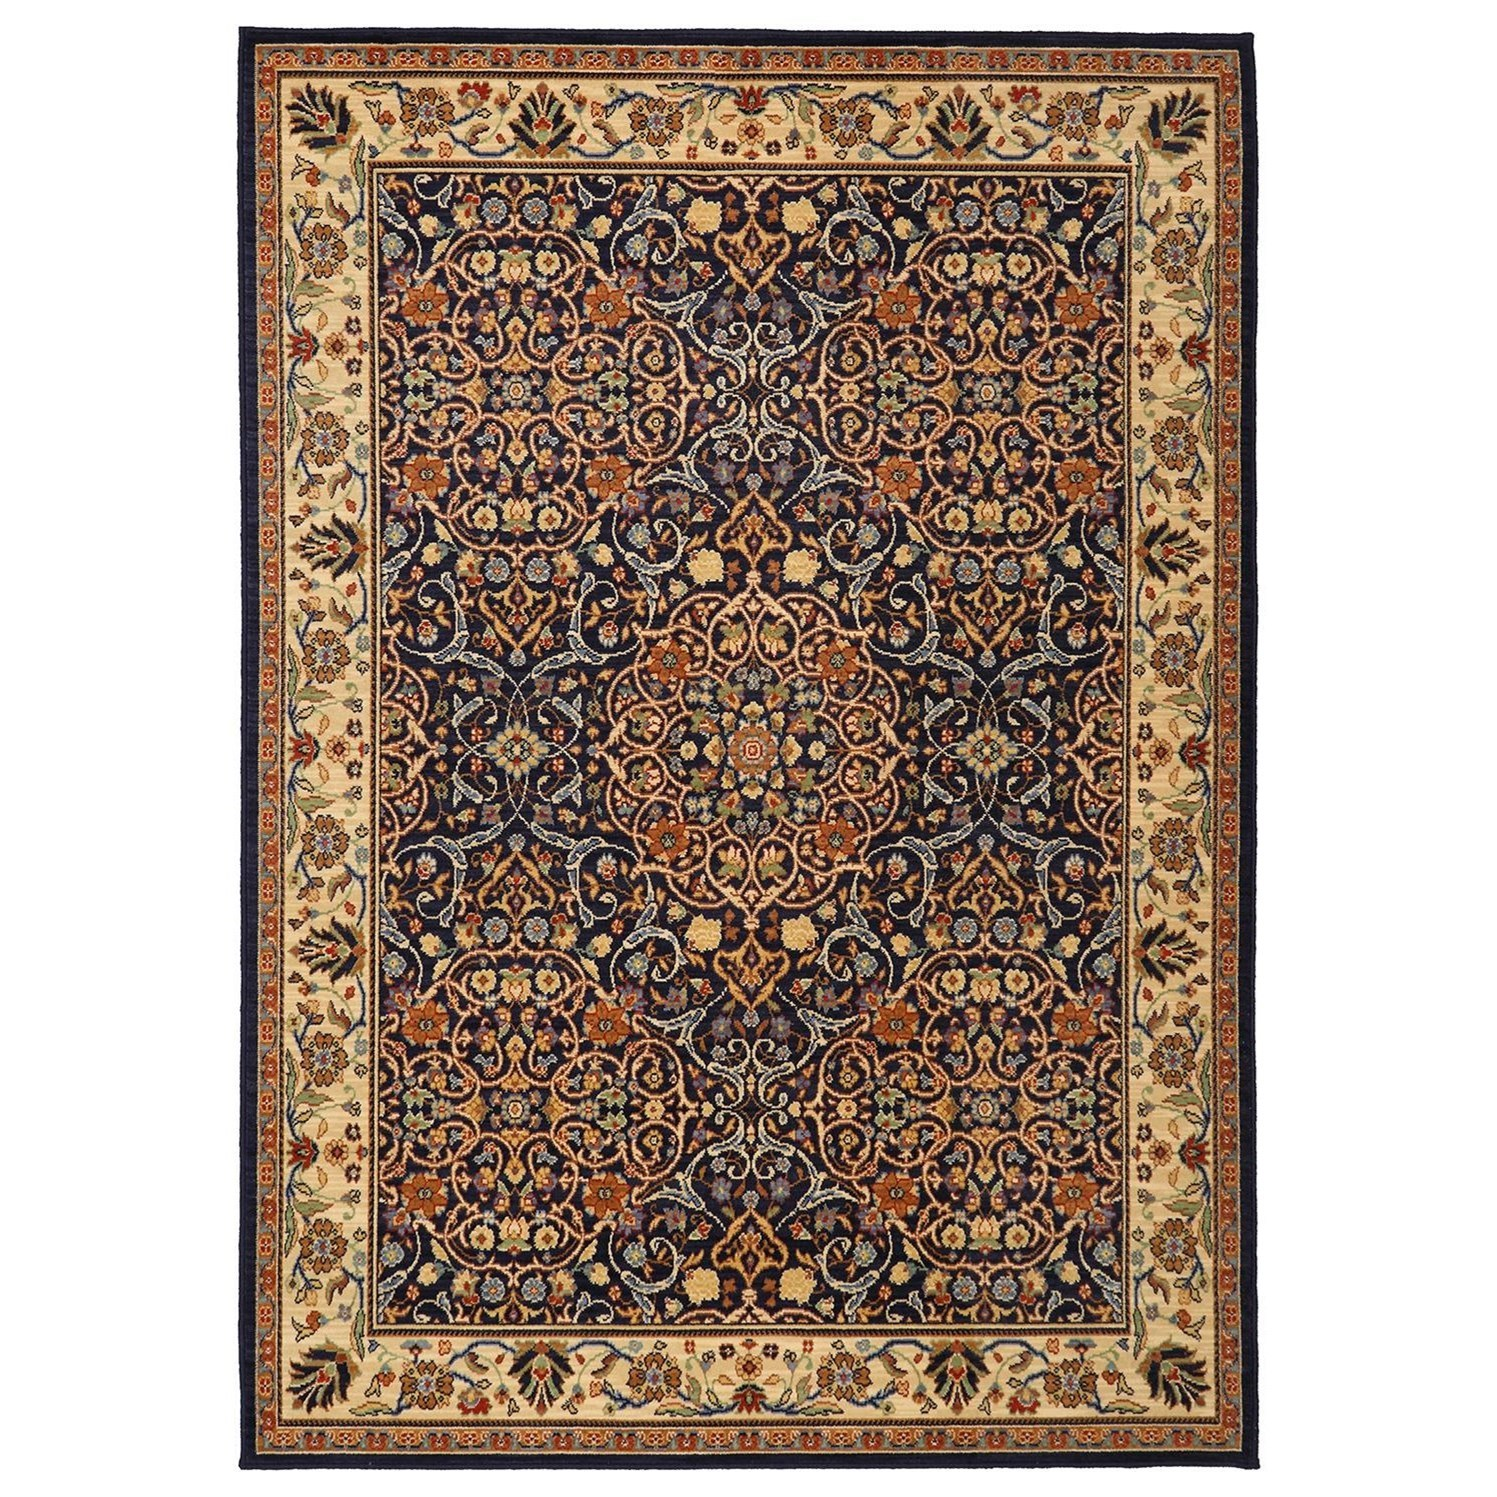 Karastan Rugs English Manor 8'6x11'6 Sutton Rug - Item Number: 02120 00603 102138